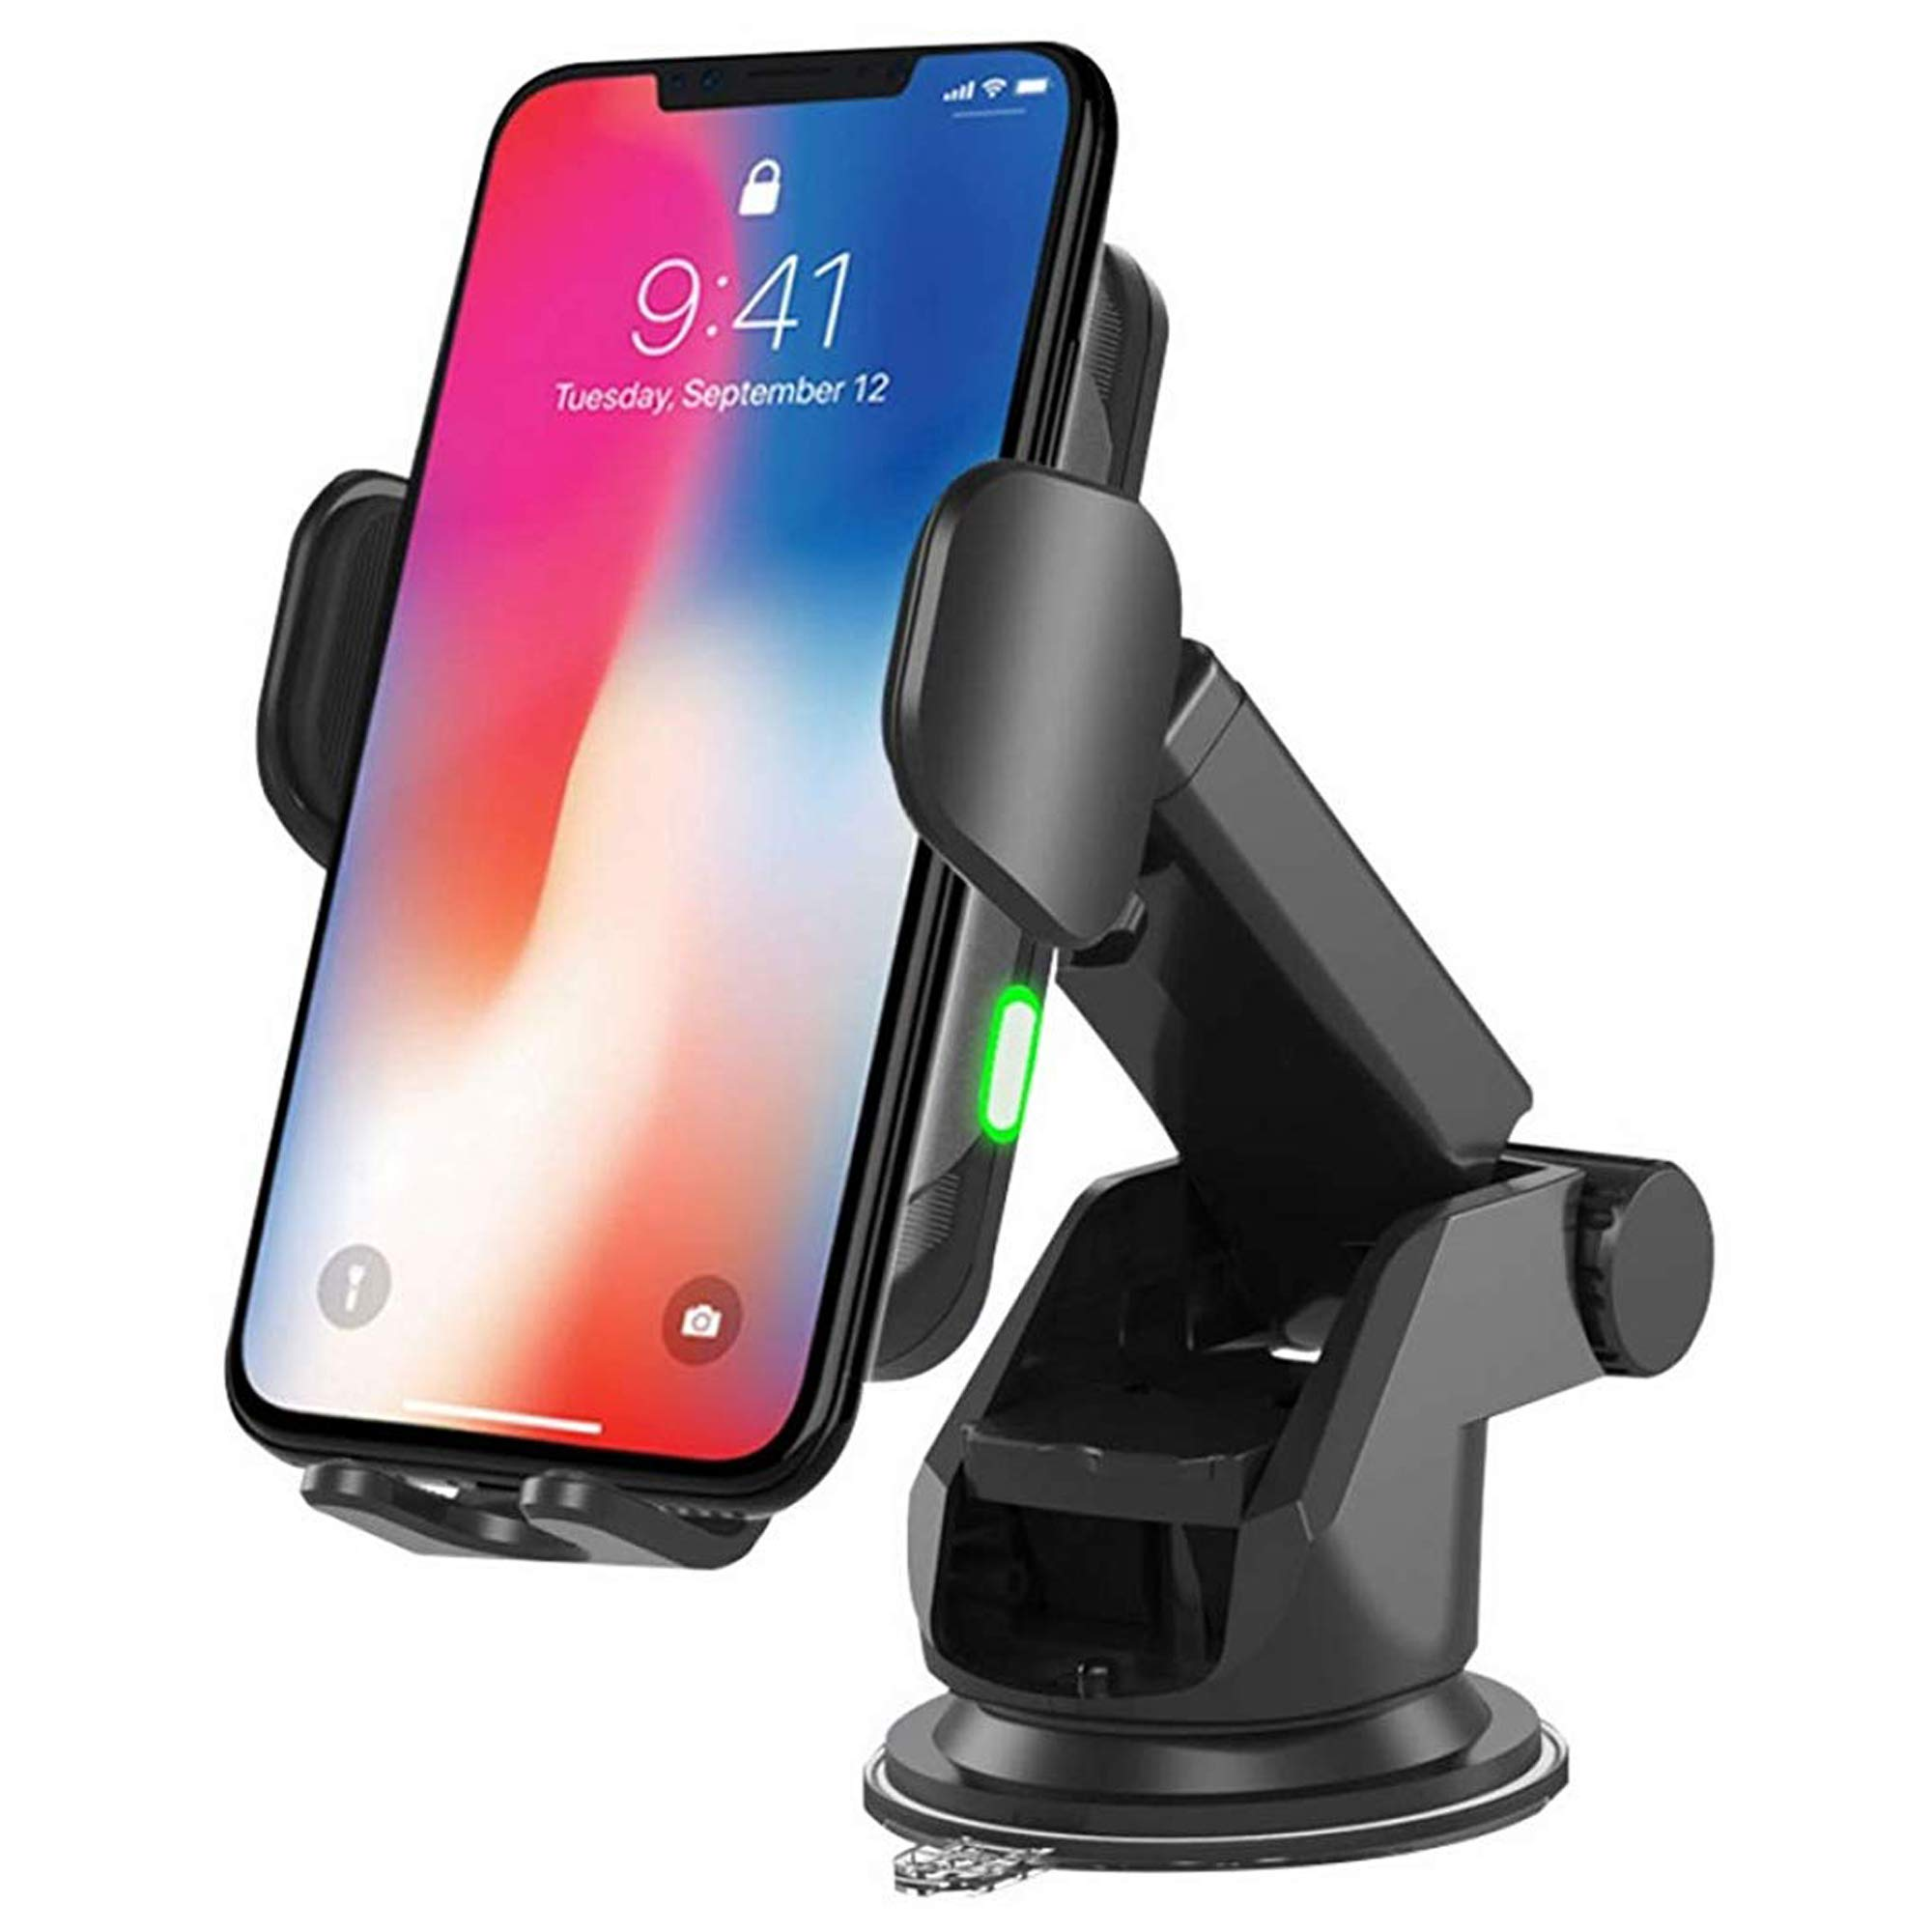 Wegacell Wireless Phone Charger Mount, Qi Fast Charging, Windshield-Dash-Vent Phone Holder, Auto Clamping Arms Compatible with iPhone 8 or Newer, SAMSUNG S8 or Newer, and Other Smartphones